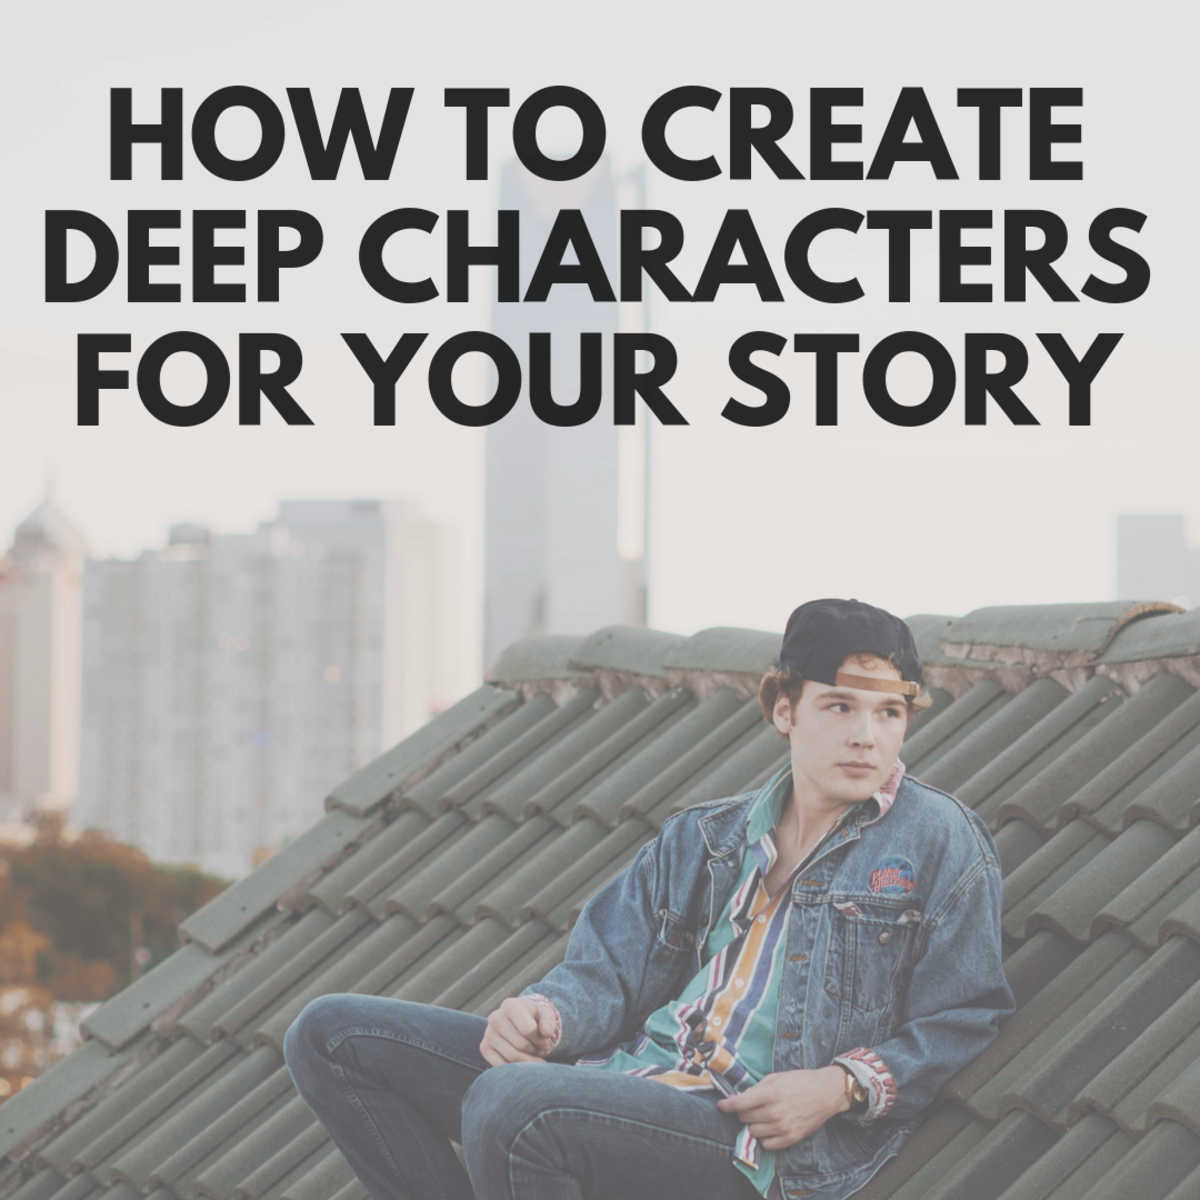 How to Create Deep Characters for Your Stories